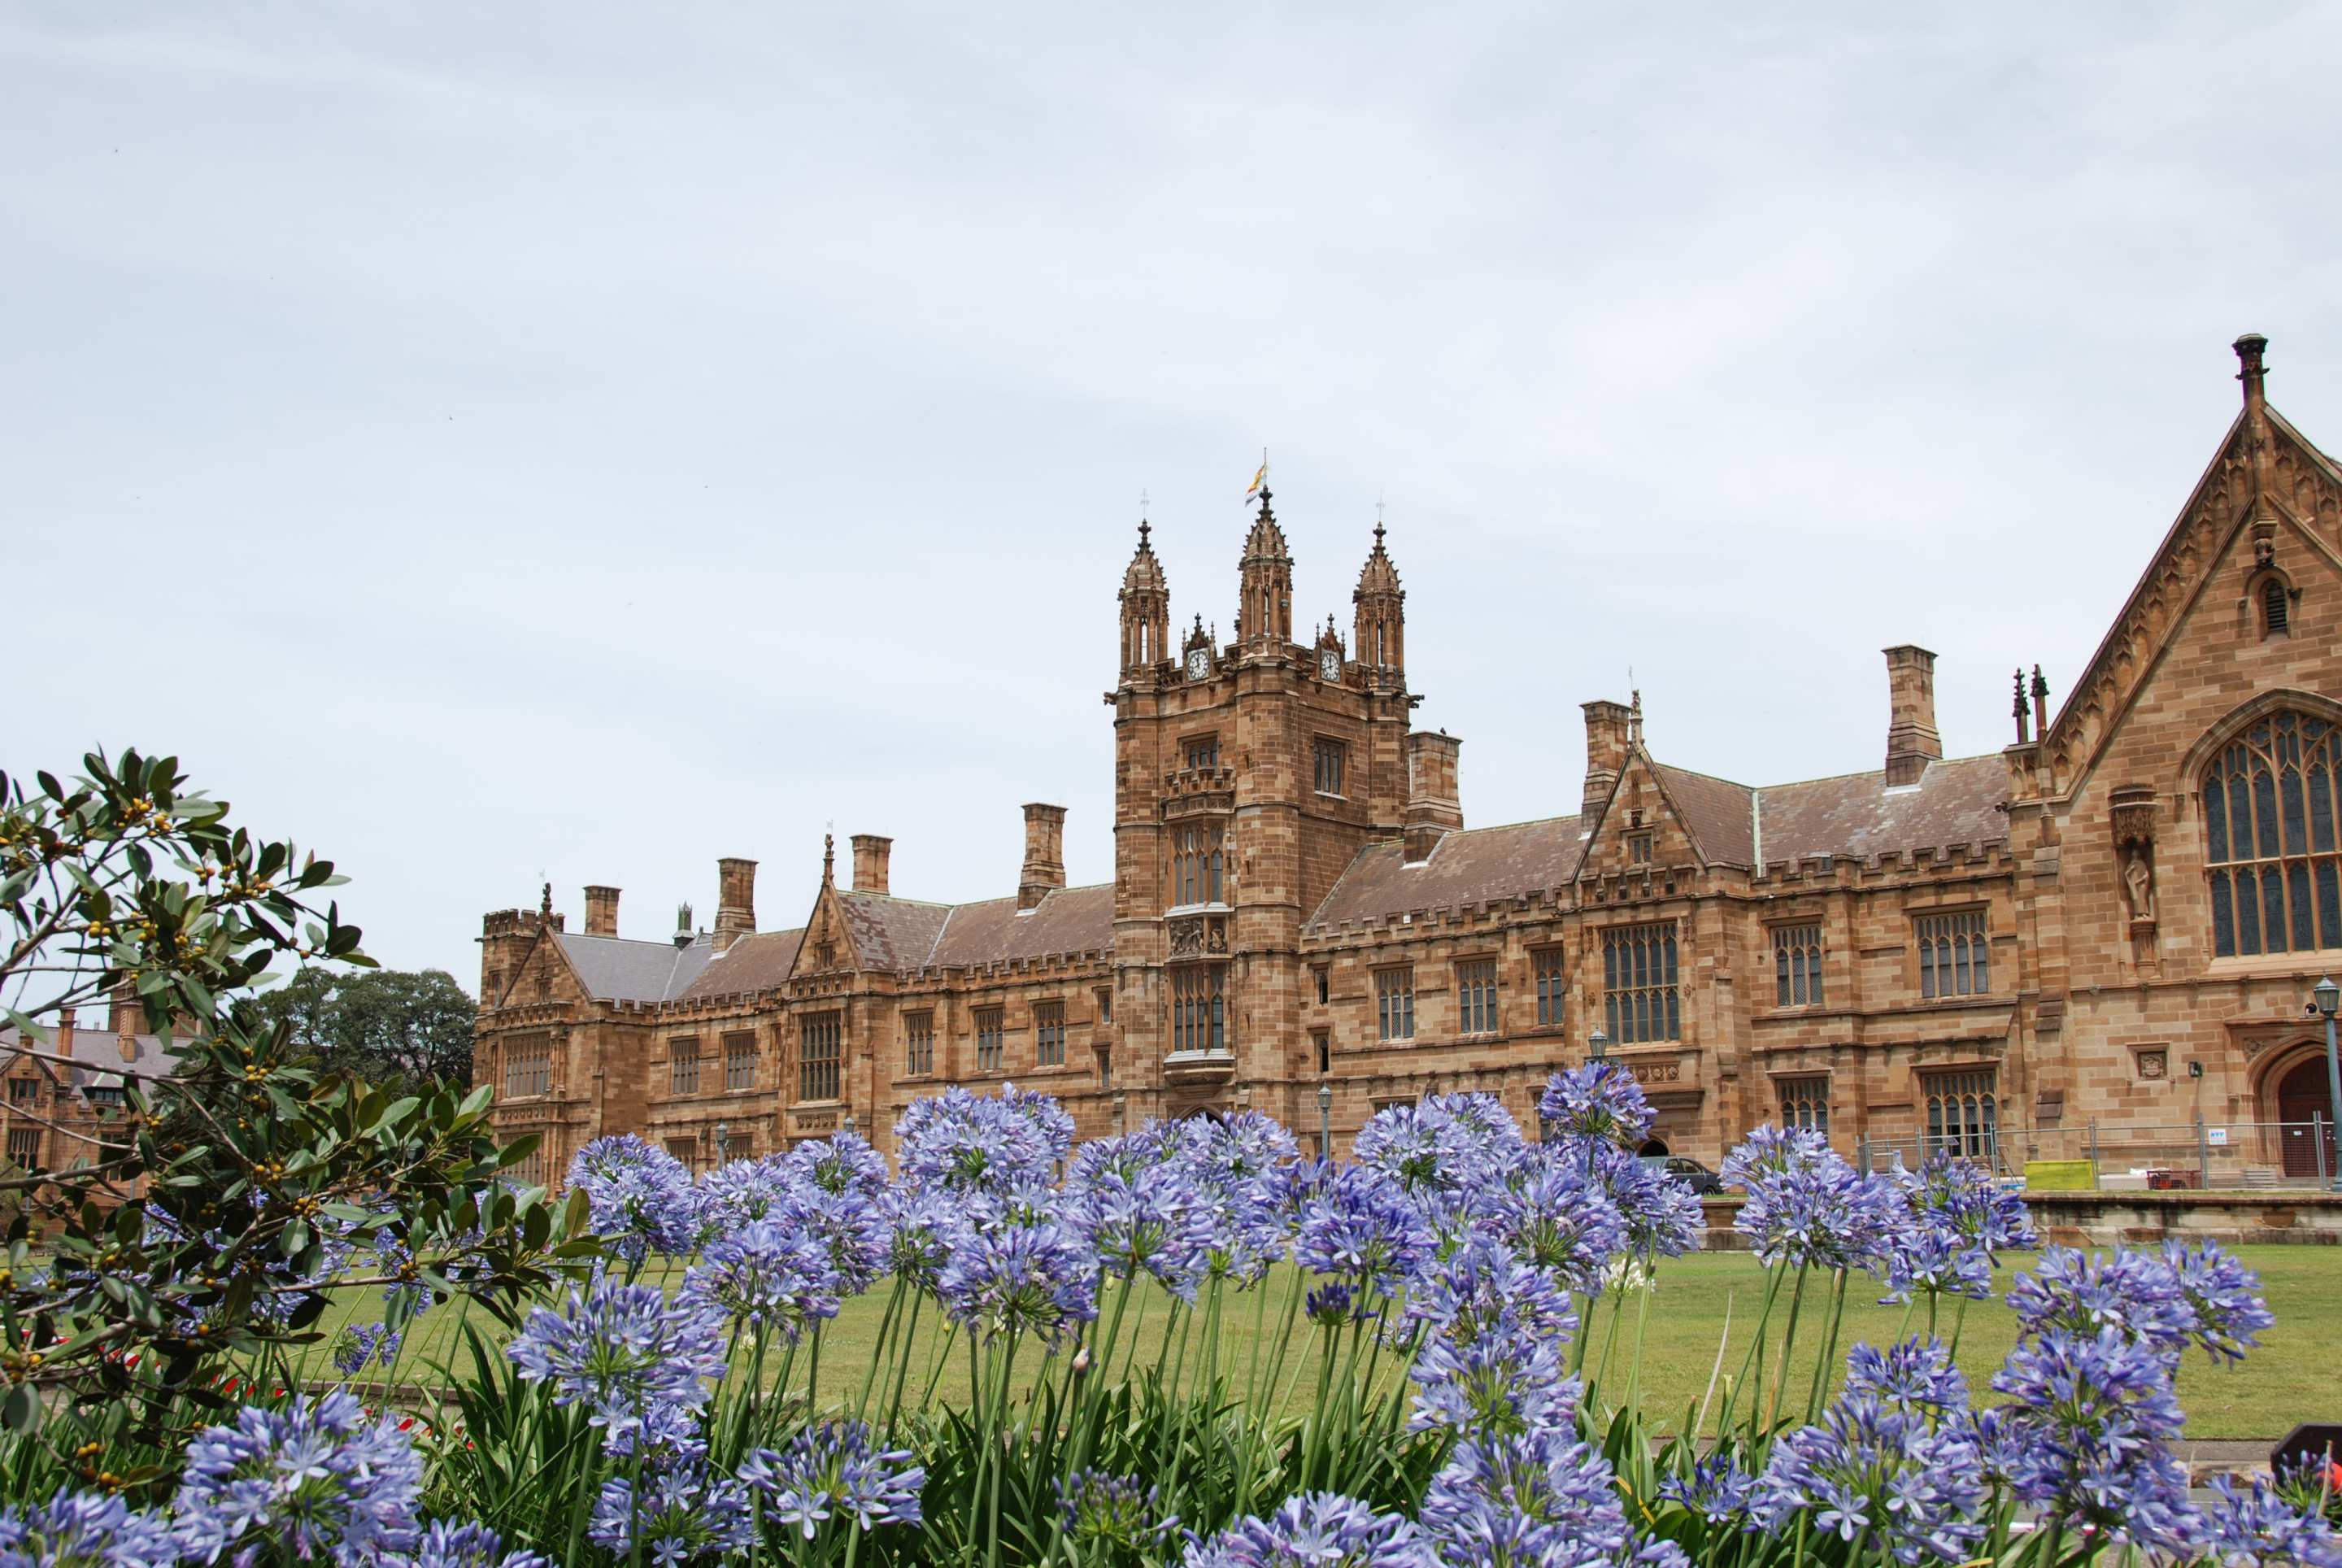 daftar jurusan kuliah di the university of sydney australia